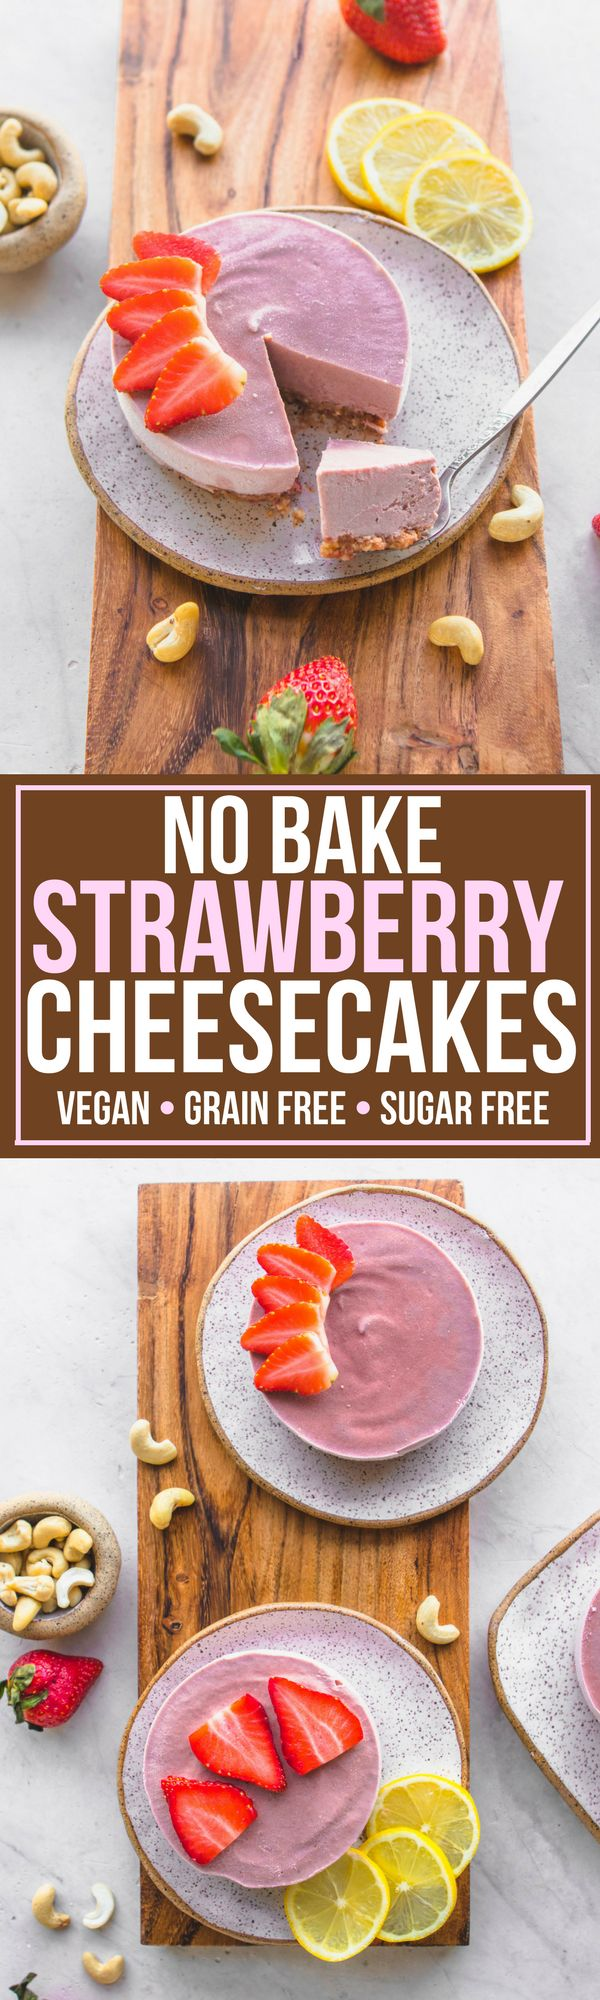 These No Bake + Sugar Free Strawberry Cheesecakes are Vegan, Grain Free, and Gluten Free! A perfect dessert when you are craving something healthy but decadent.